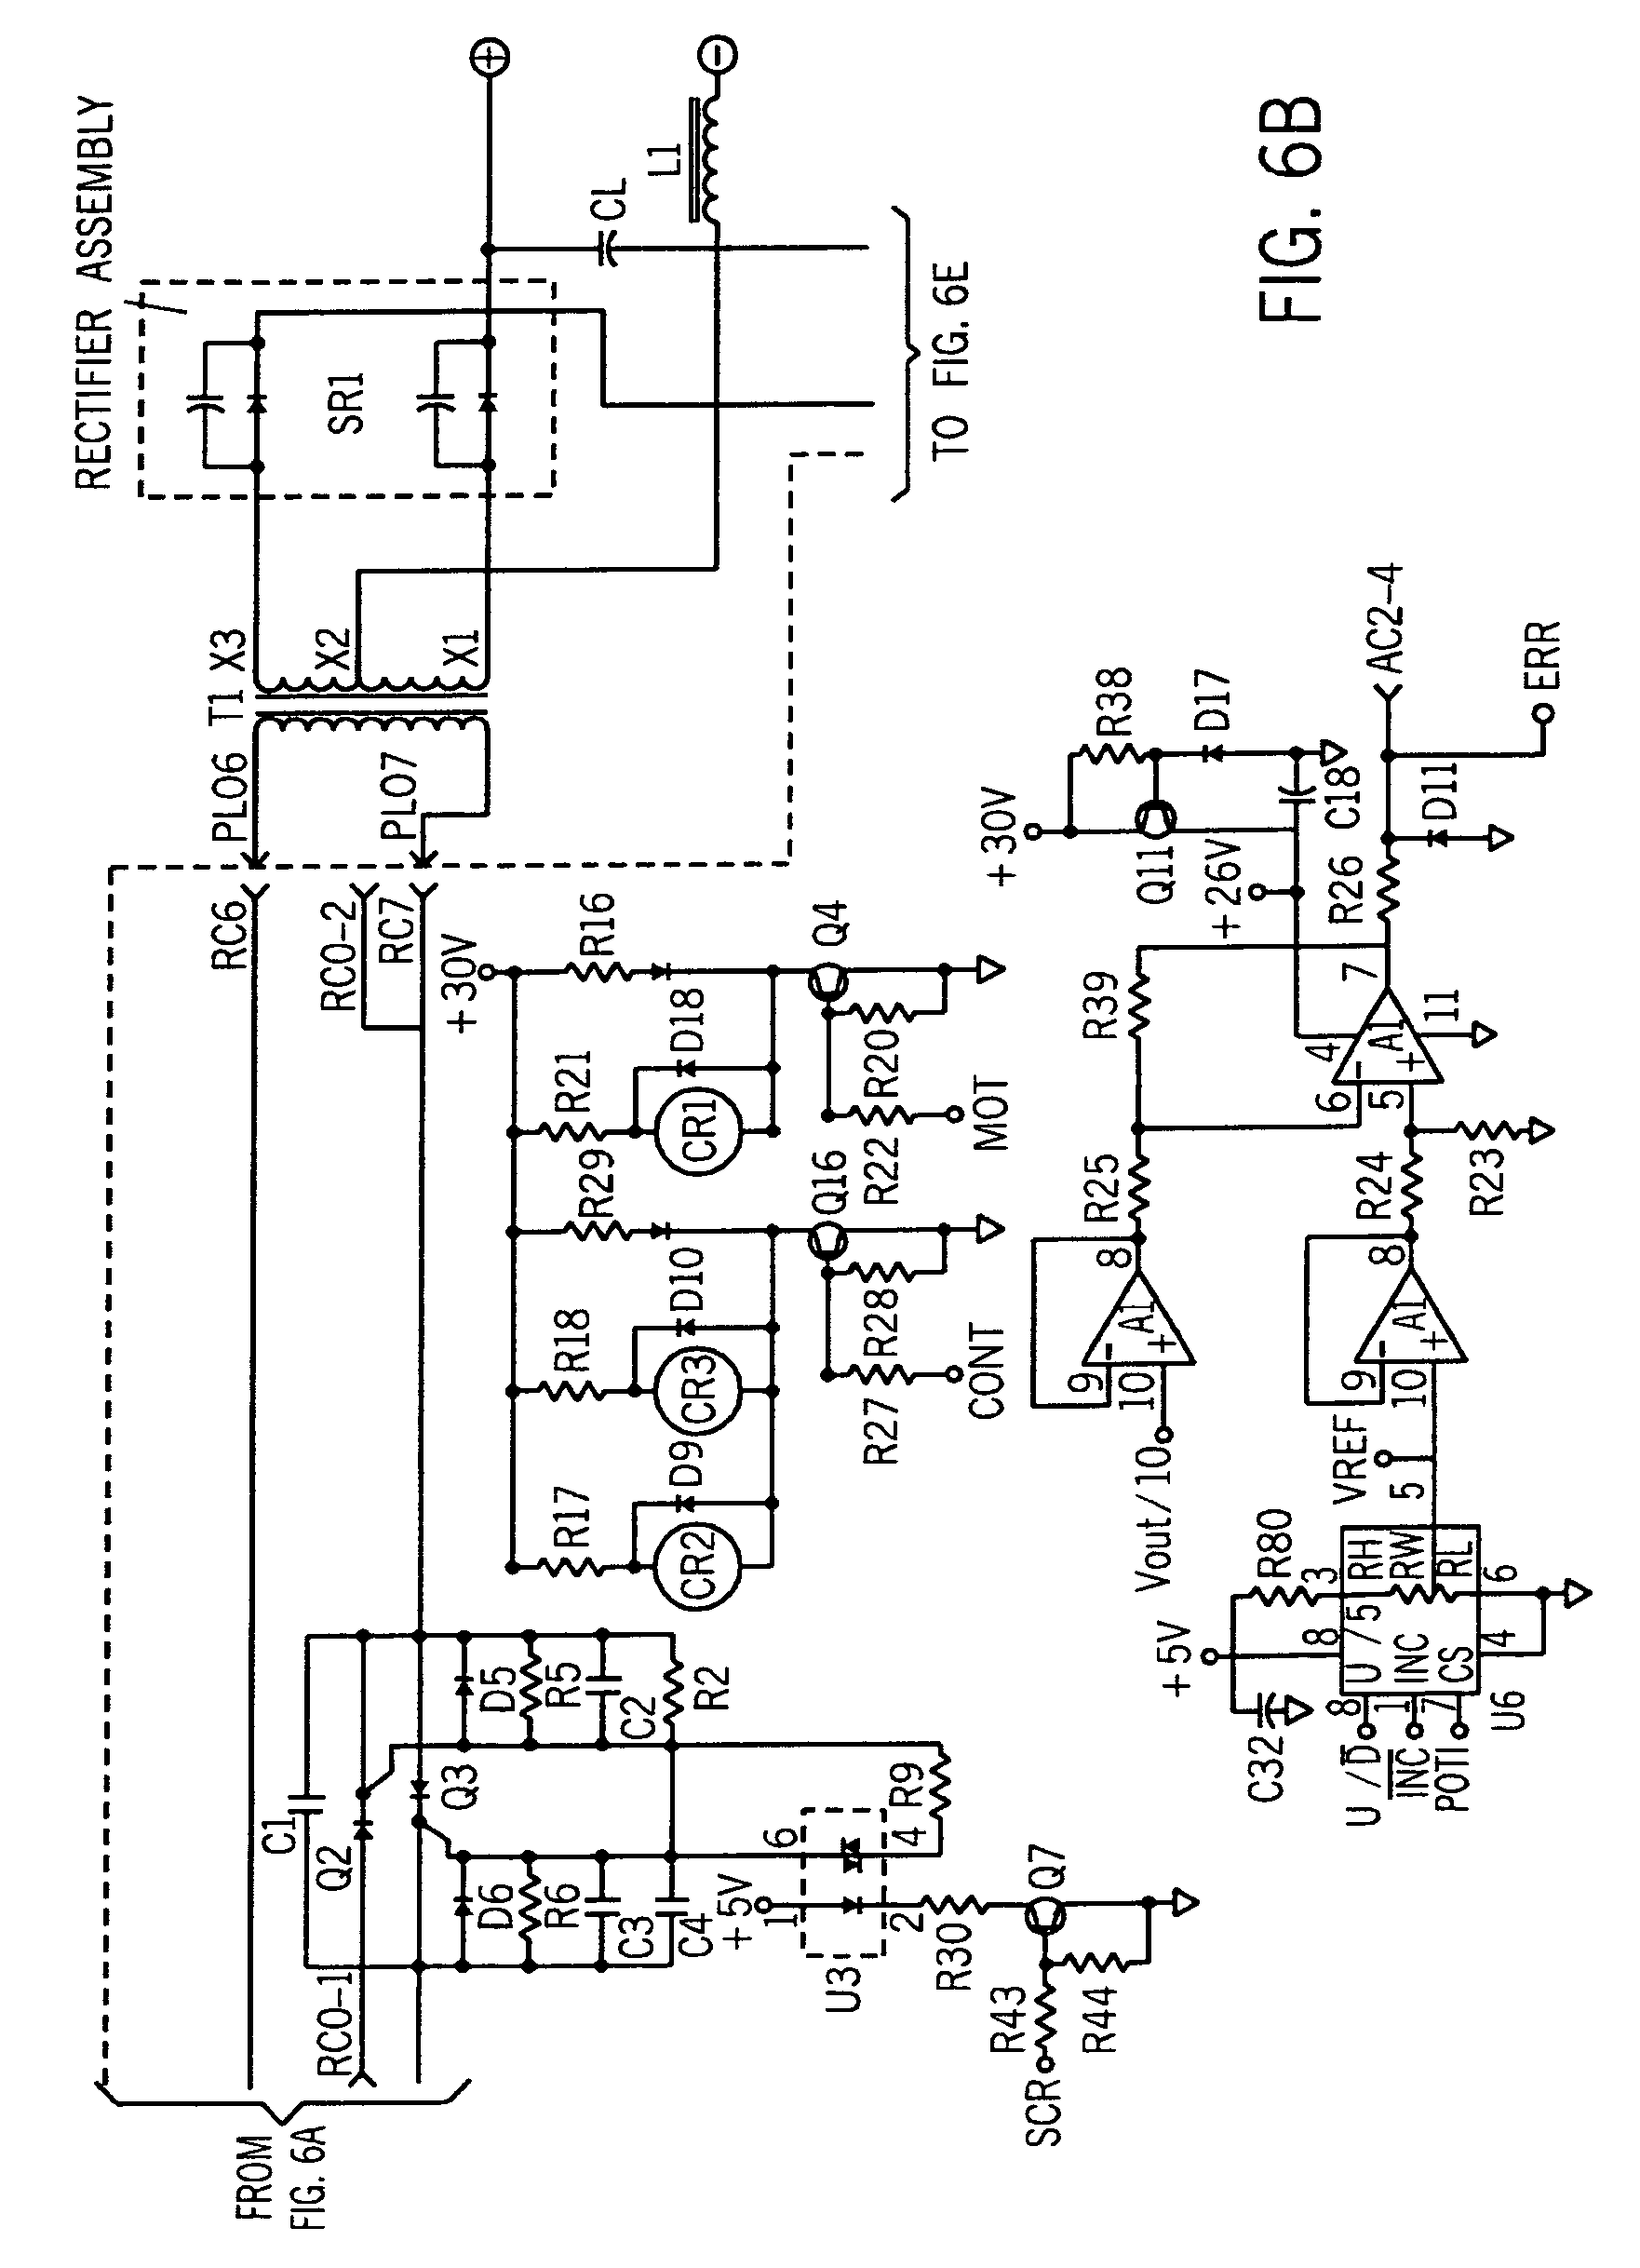 Capacitive Discharge Welder Wiring Diagram